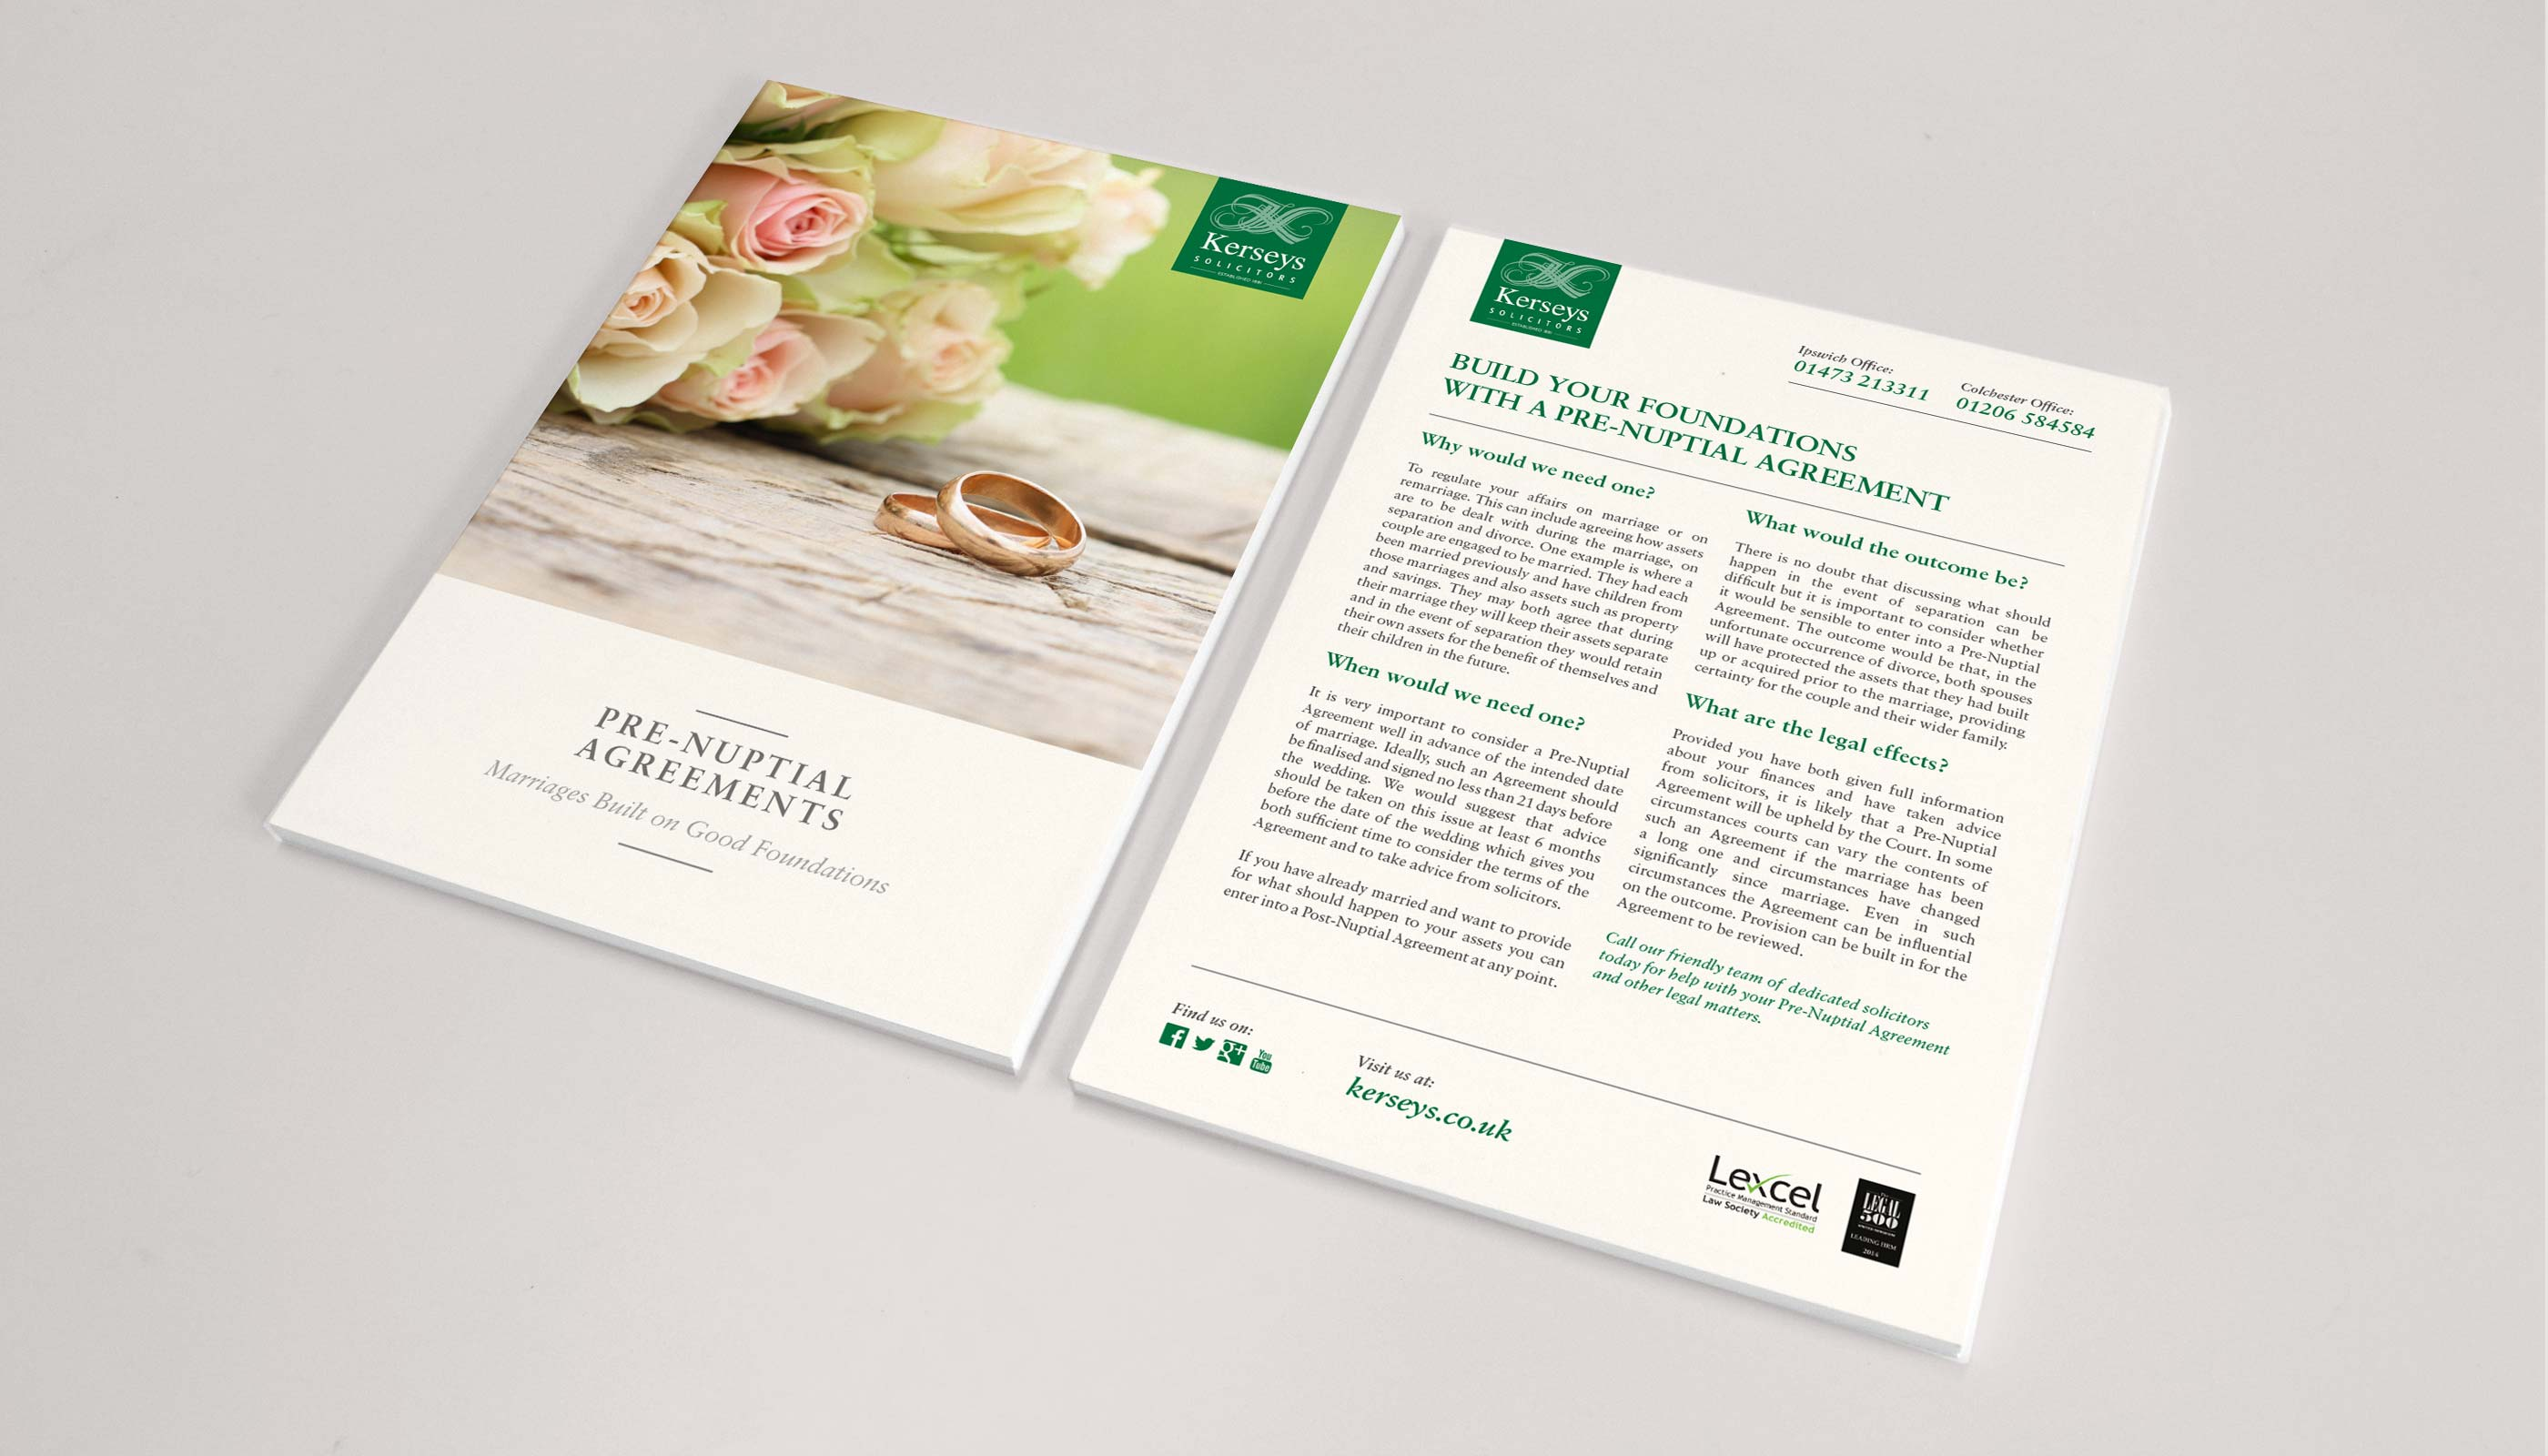 Flyer design and print for Kerseys Solicitors Pre Nuptial Agreement service in Ipswich, Suffolk.